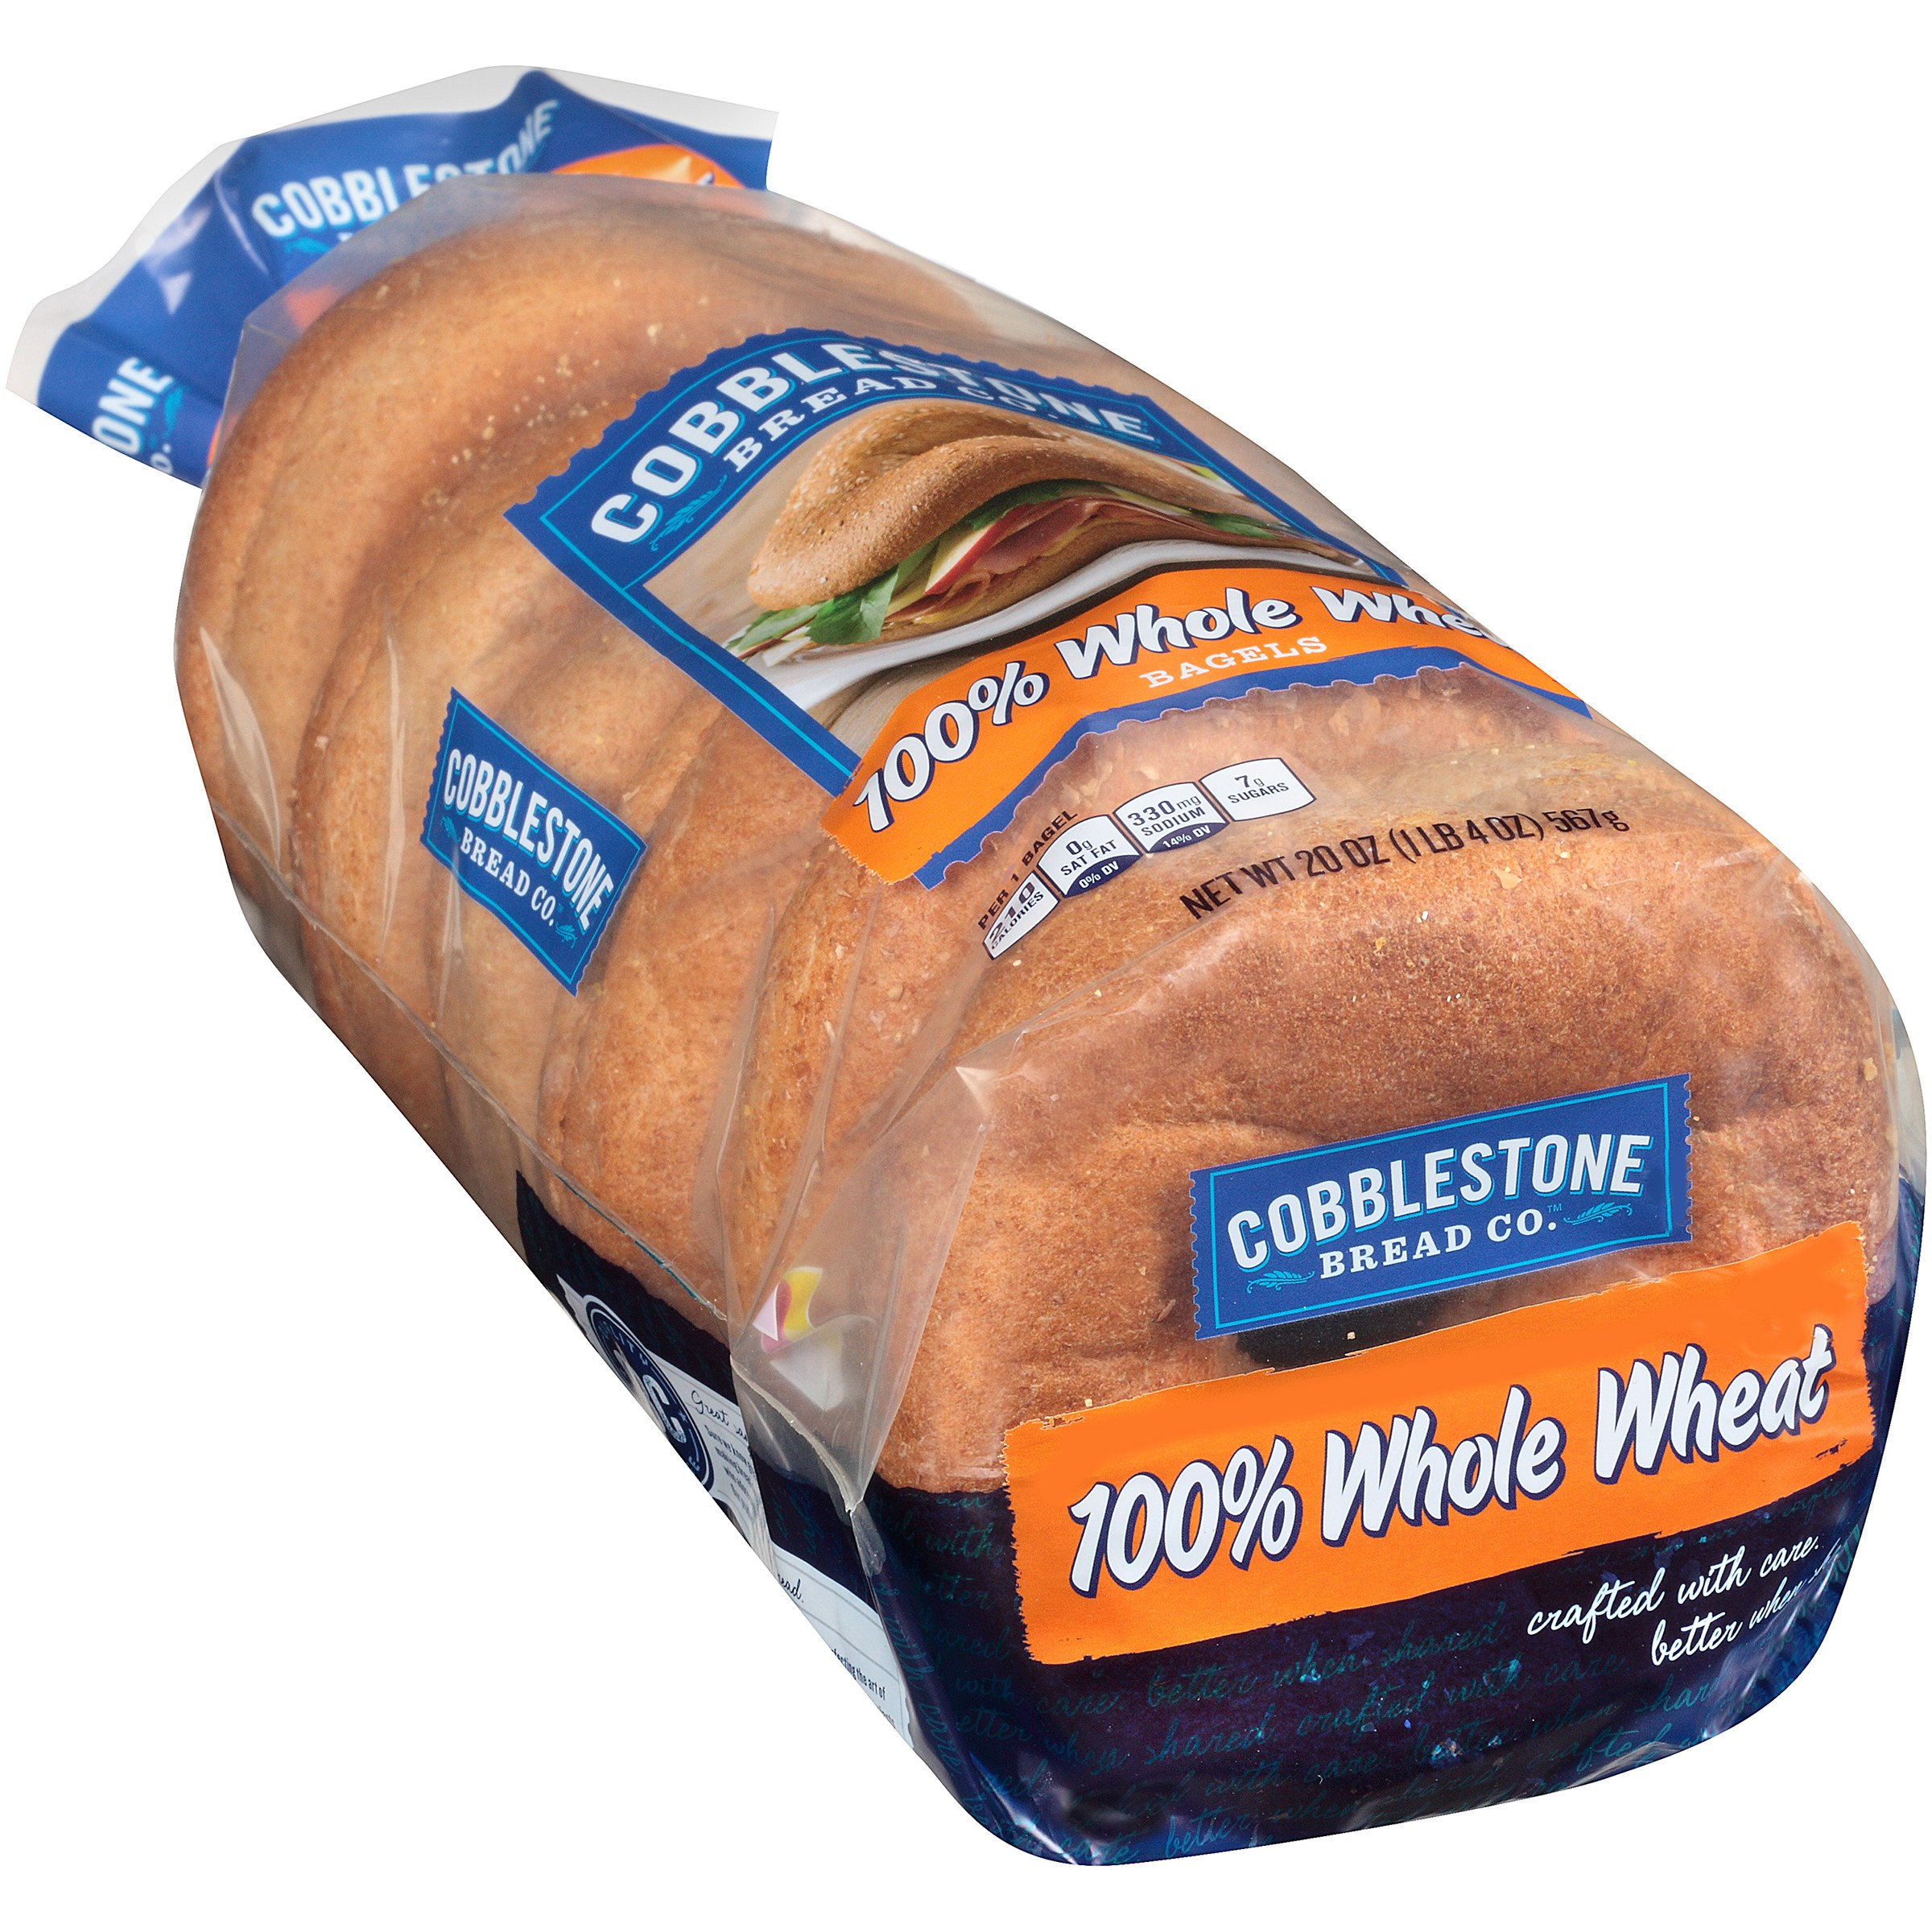 Cobblestone Bread Co. 100% Whole Wheat Bagels 20 oz. Bag by Flowers Foods